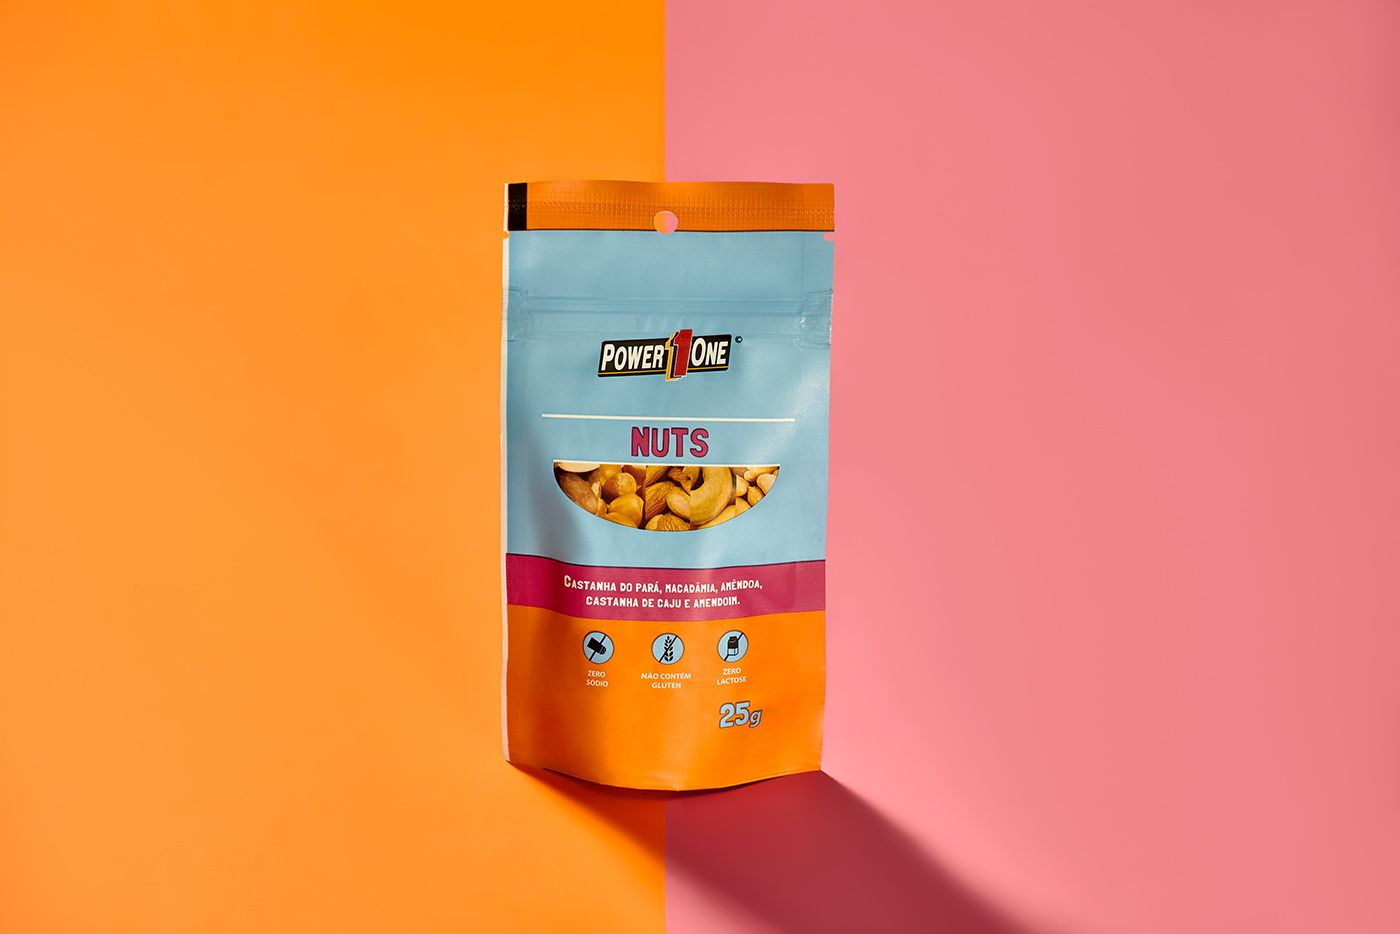 NUTS 25g